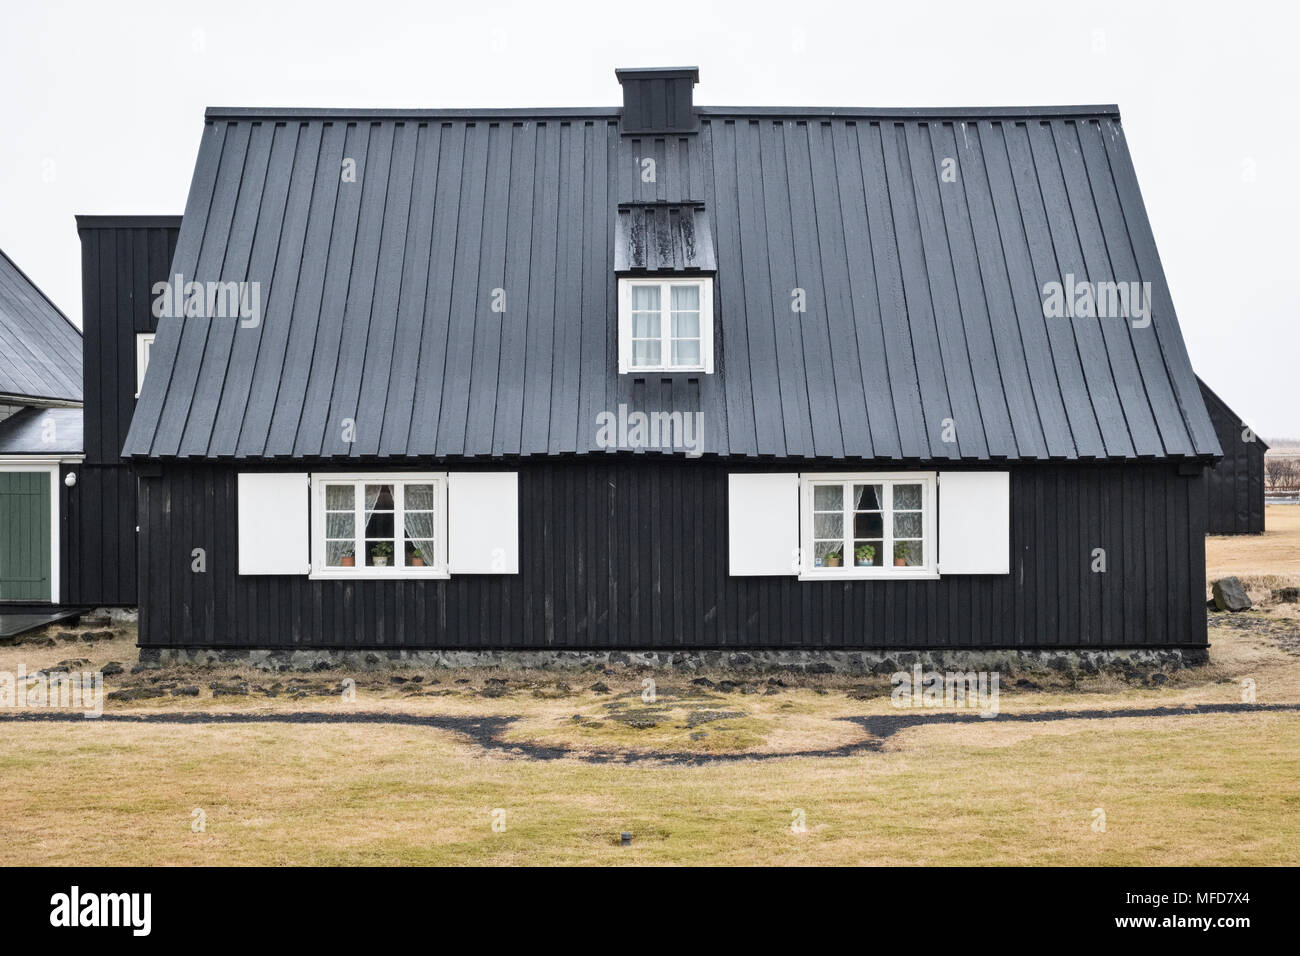 Eyrarbakki, South Iceland. Húsið - The House - is one of Iceland's oldest surviving timber houses, built in 1765 - Stock Image